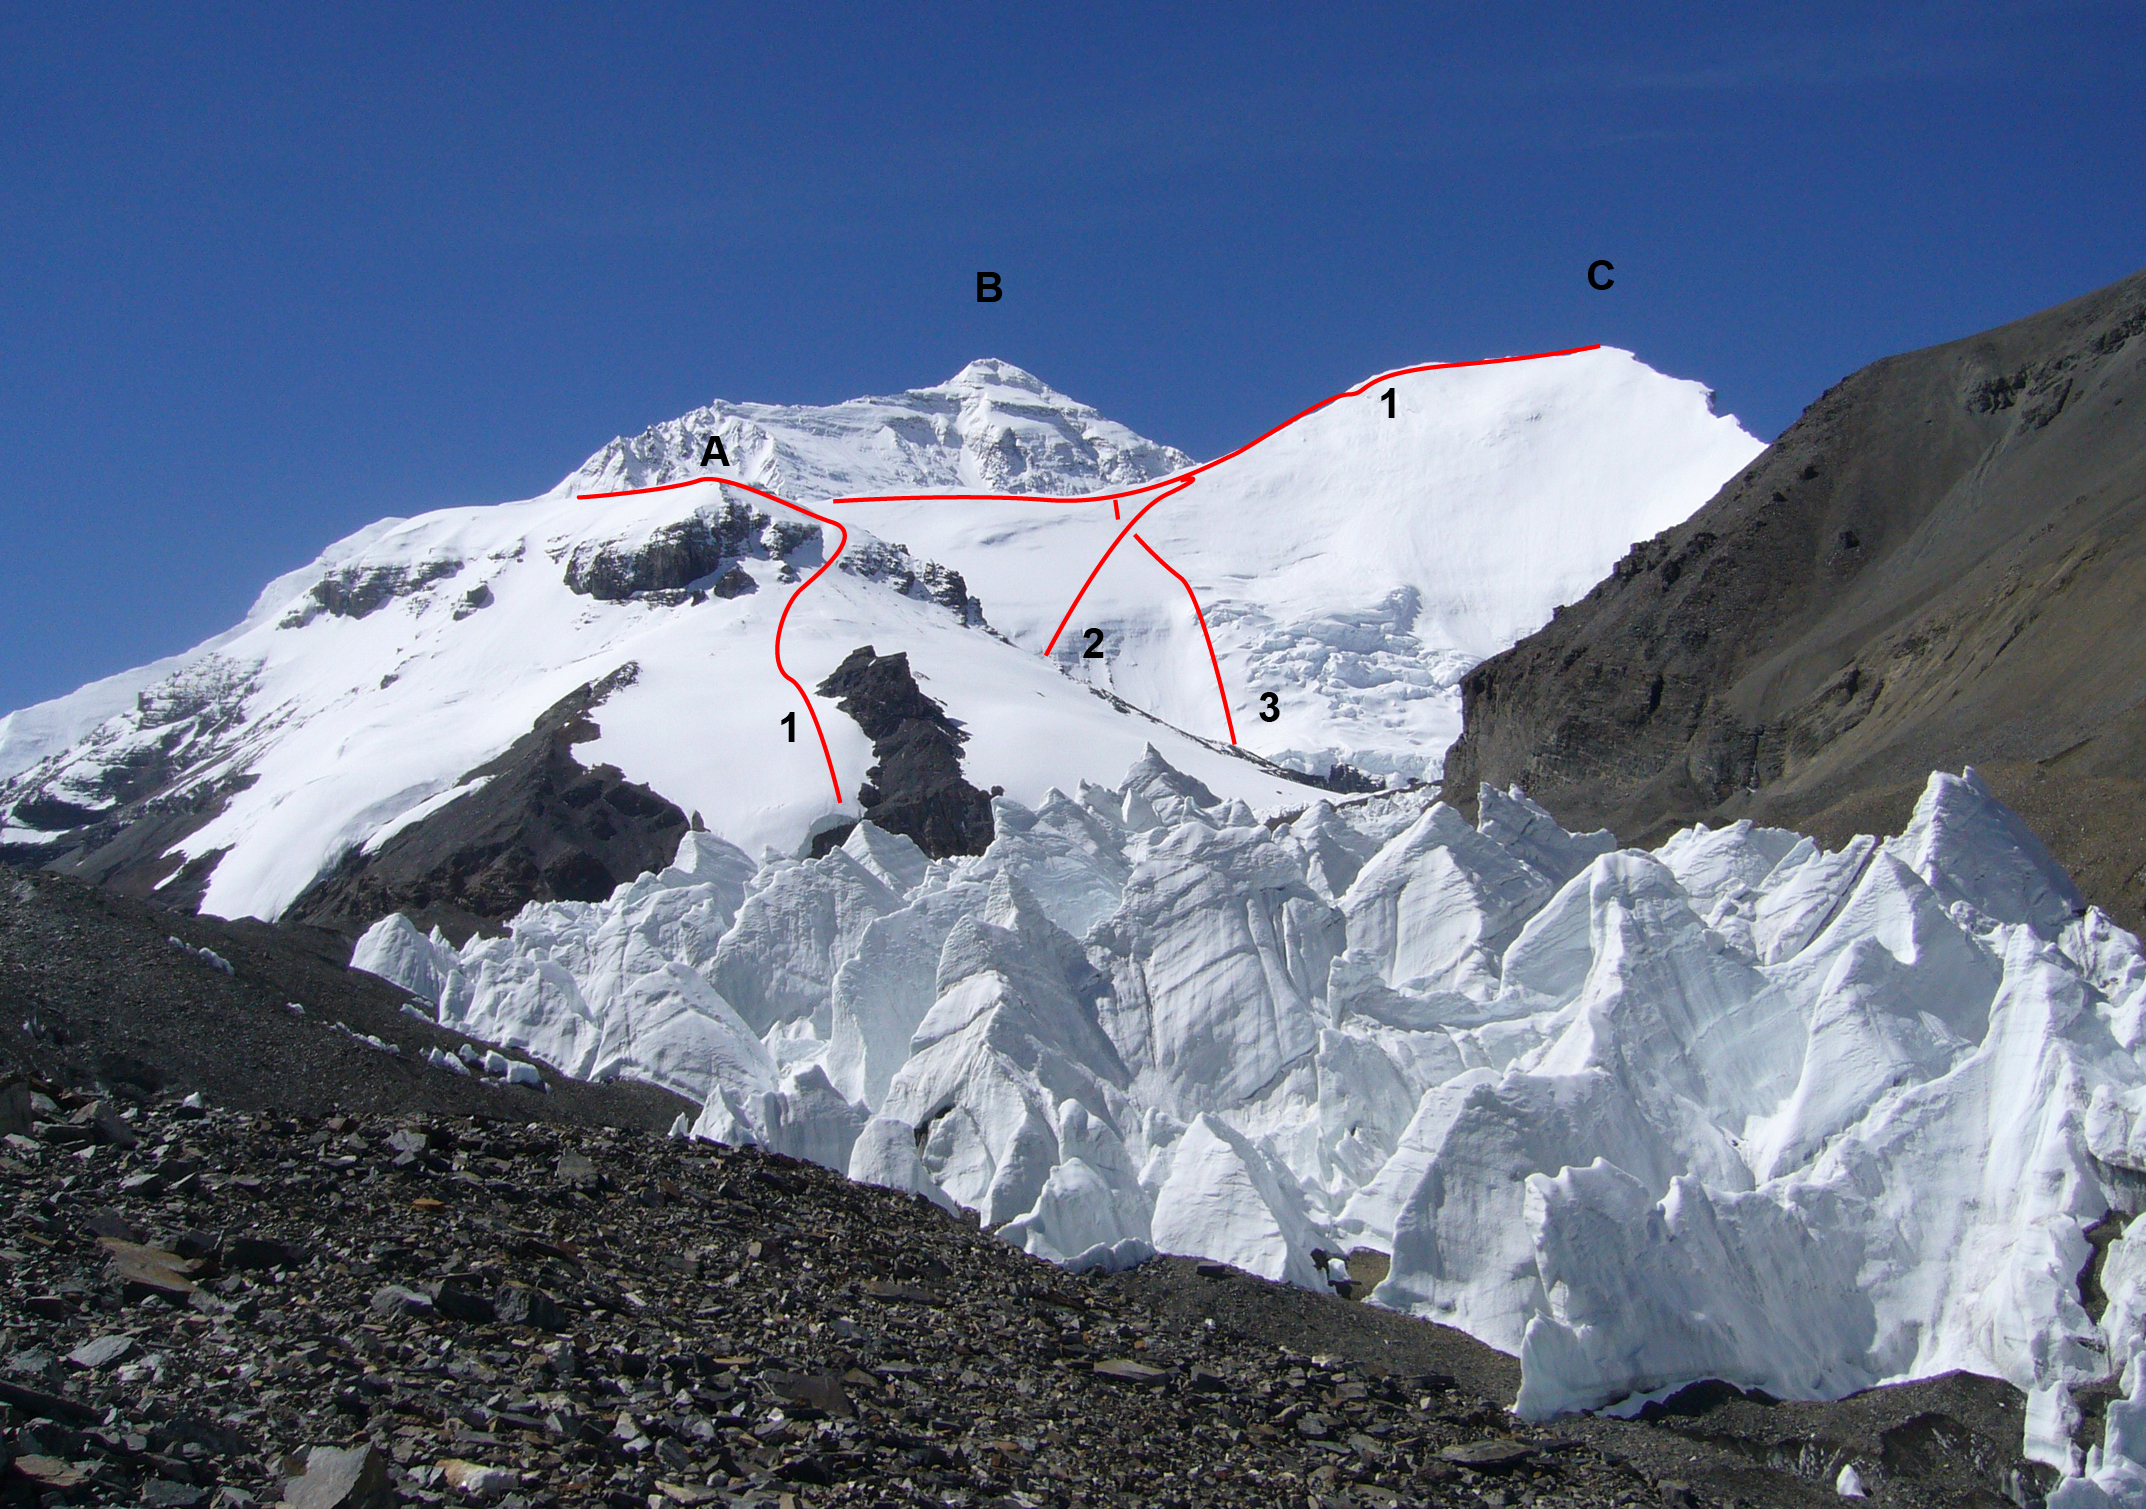 From the approach to the north: (A) Point 6,822m; (B) Everest; and (C) Changtse. (1) Approach to and east ridge of Changtse (first ascent 1982). (2) Jornet variant on north face (2016). (3) Japanese variant on north face (1986).